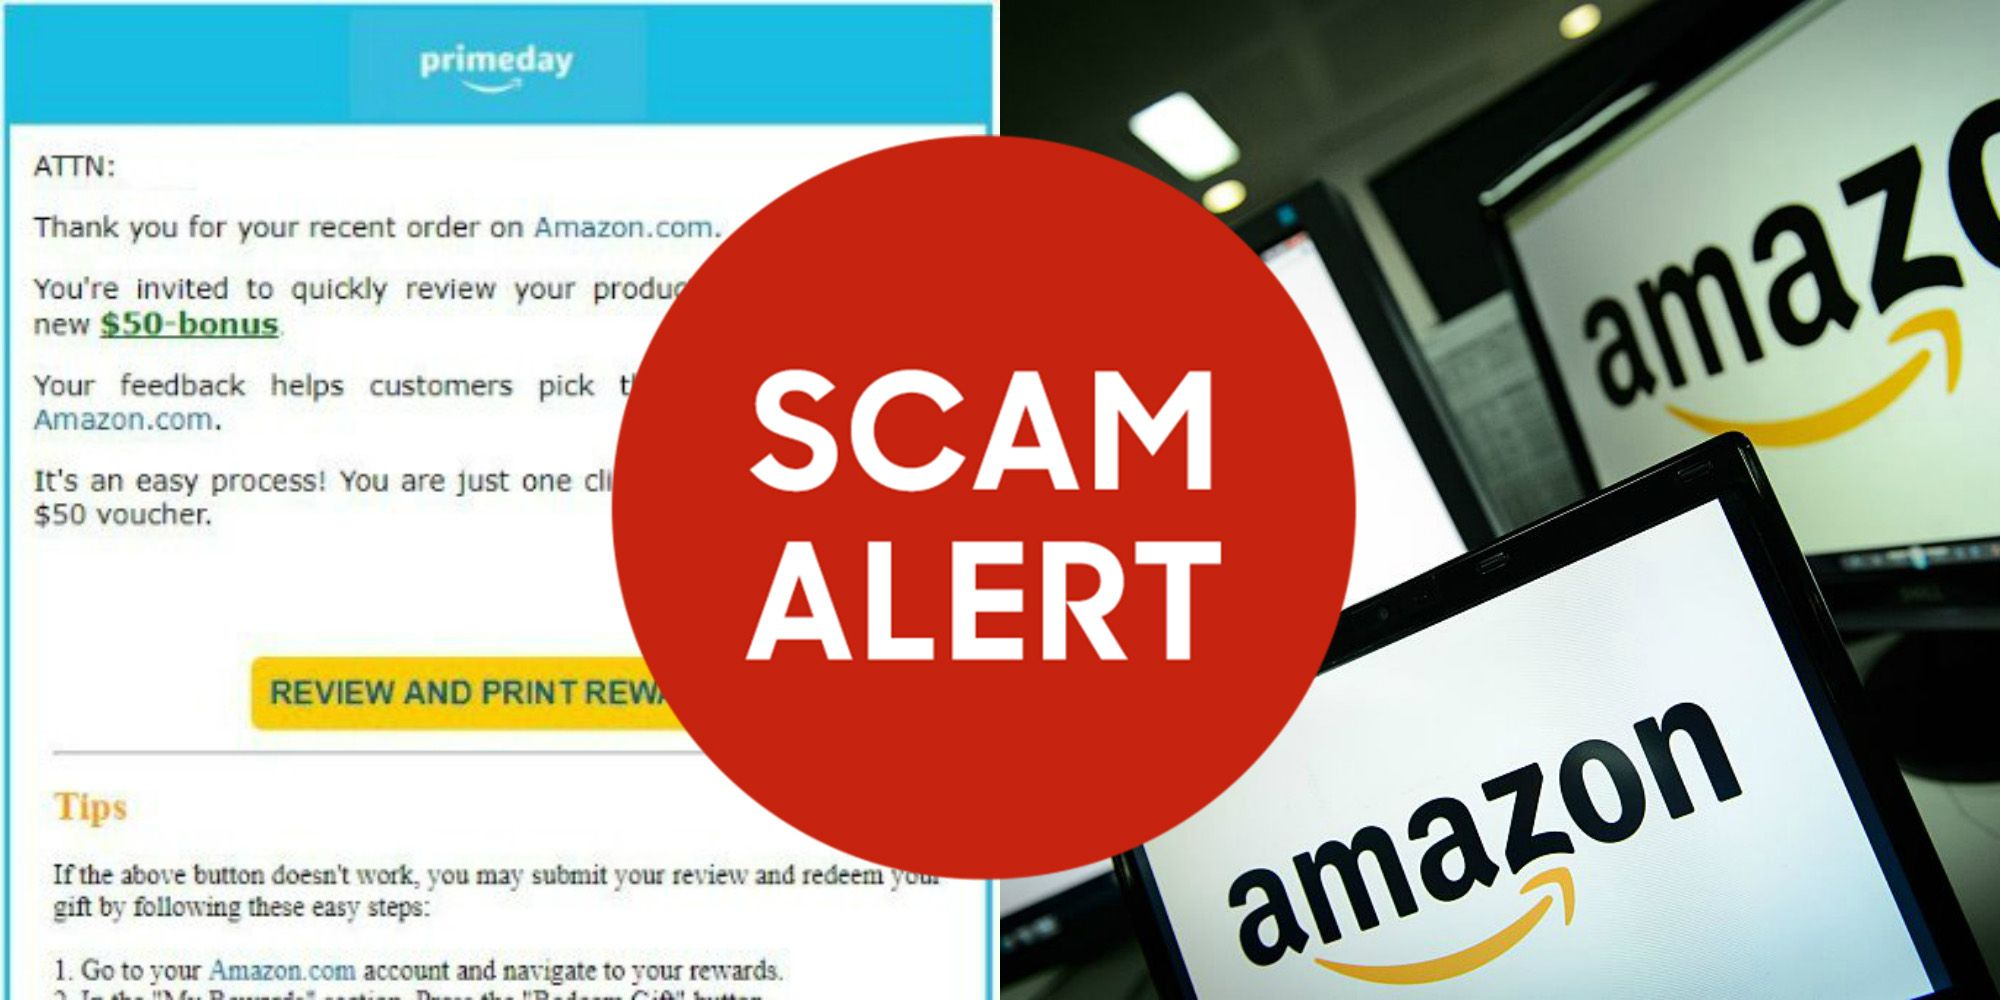 Amazon Users, Beware of This Reported Prime Day Email Scam